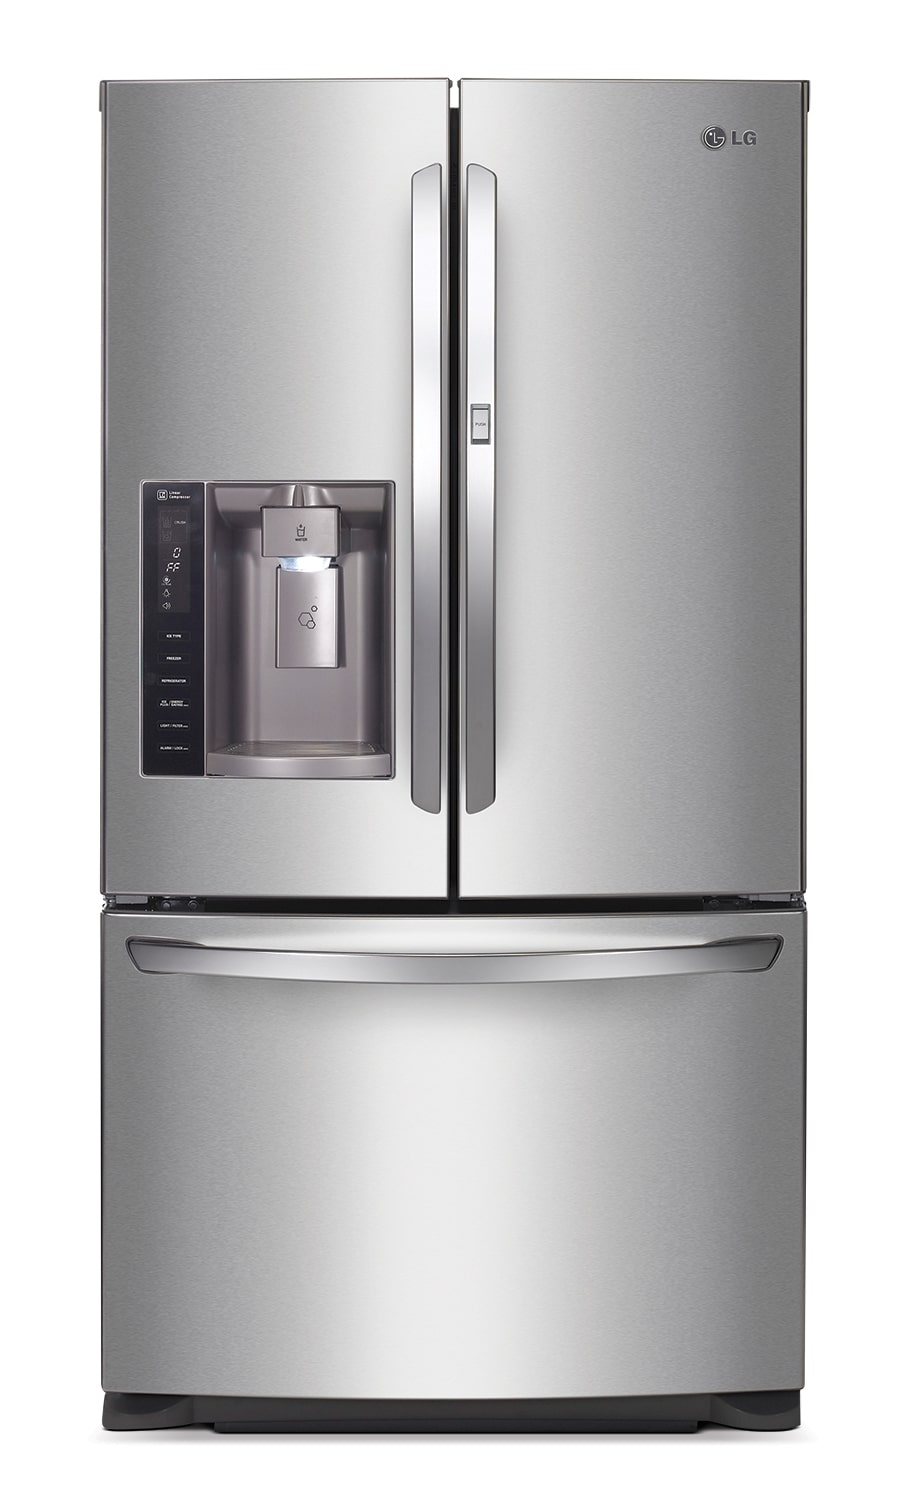 LG Appliances Stainless Steel French Door Refrigerator (26.6 Cu. Ft.) - LFXS27566S